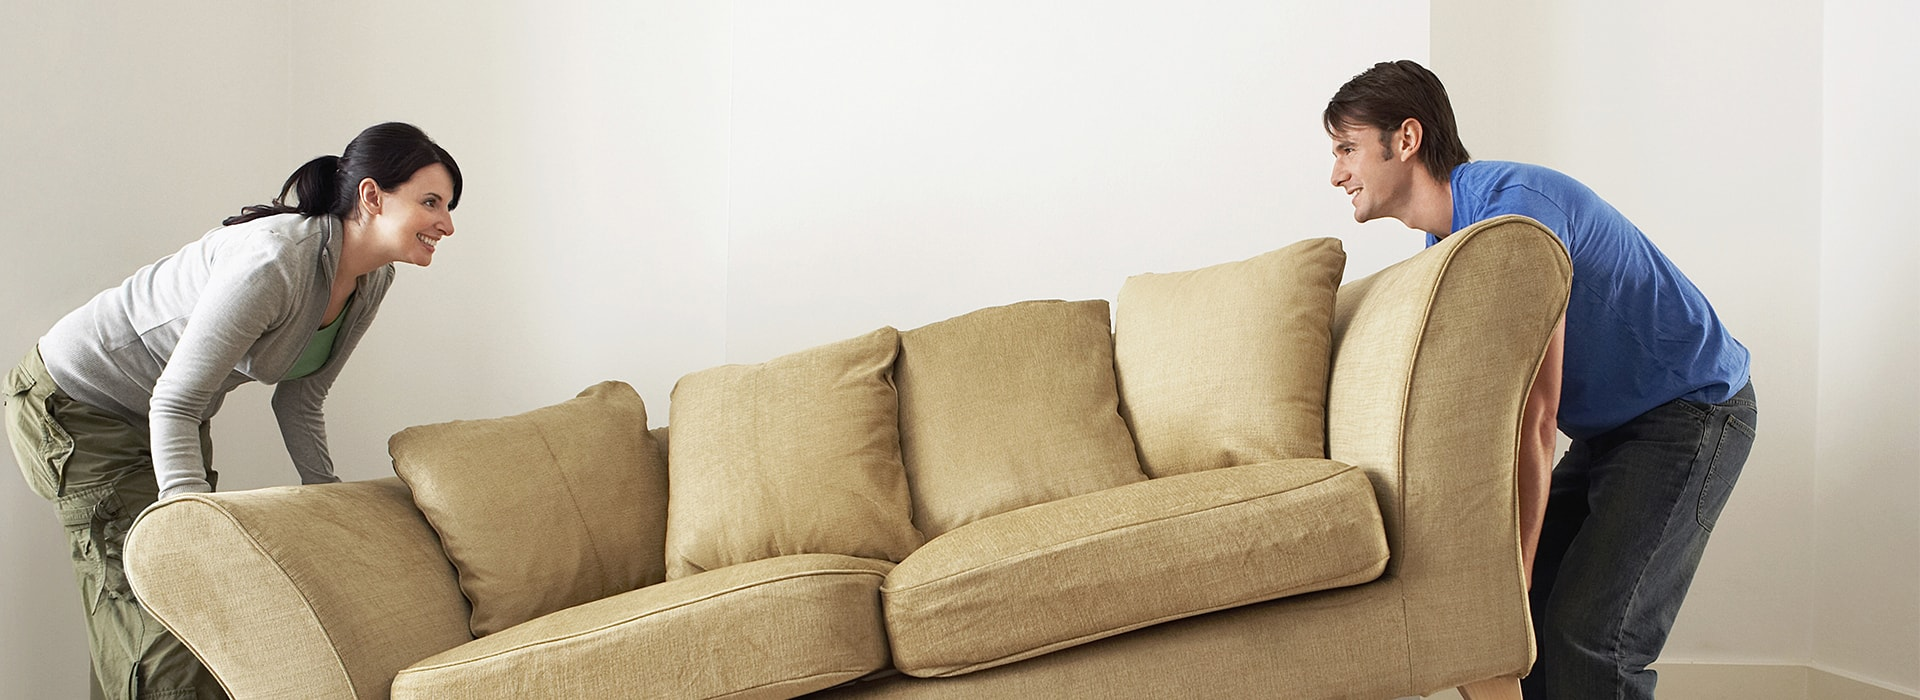 Use removal tips to move your house easily.